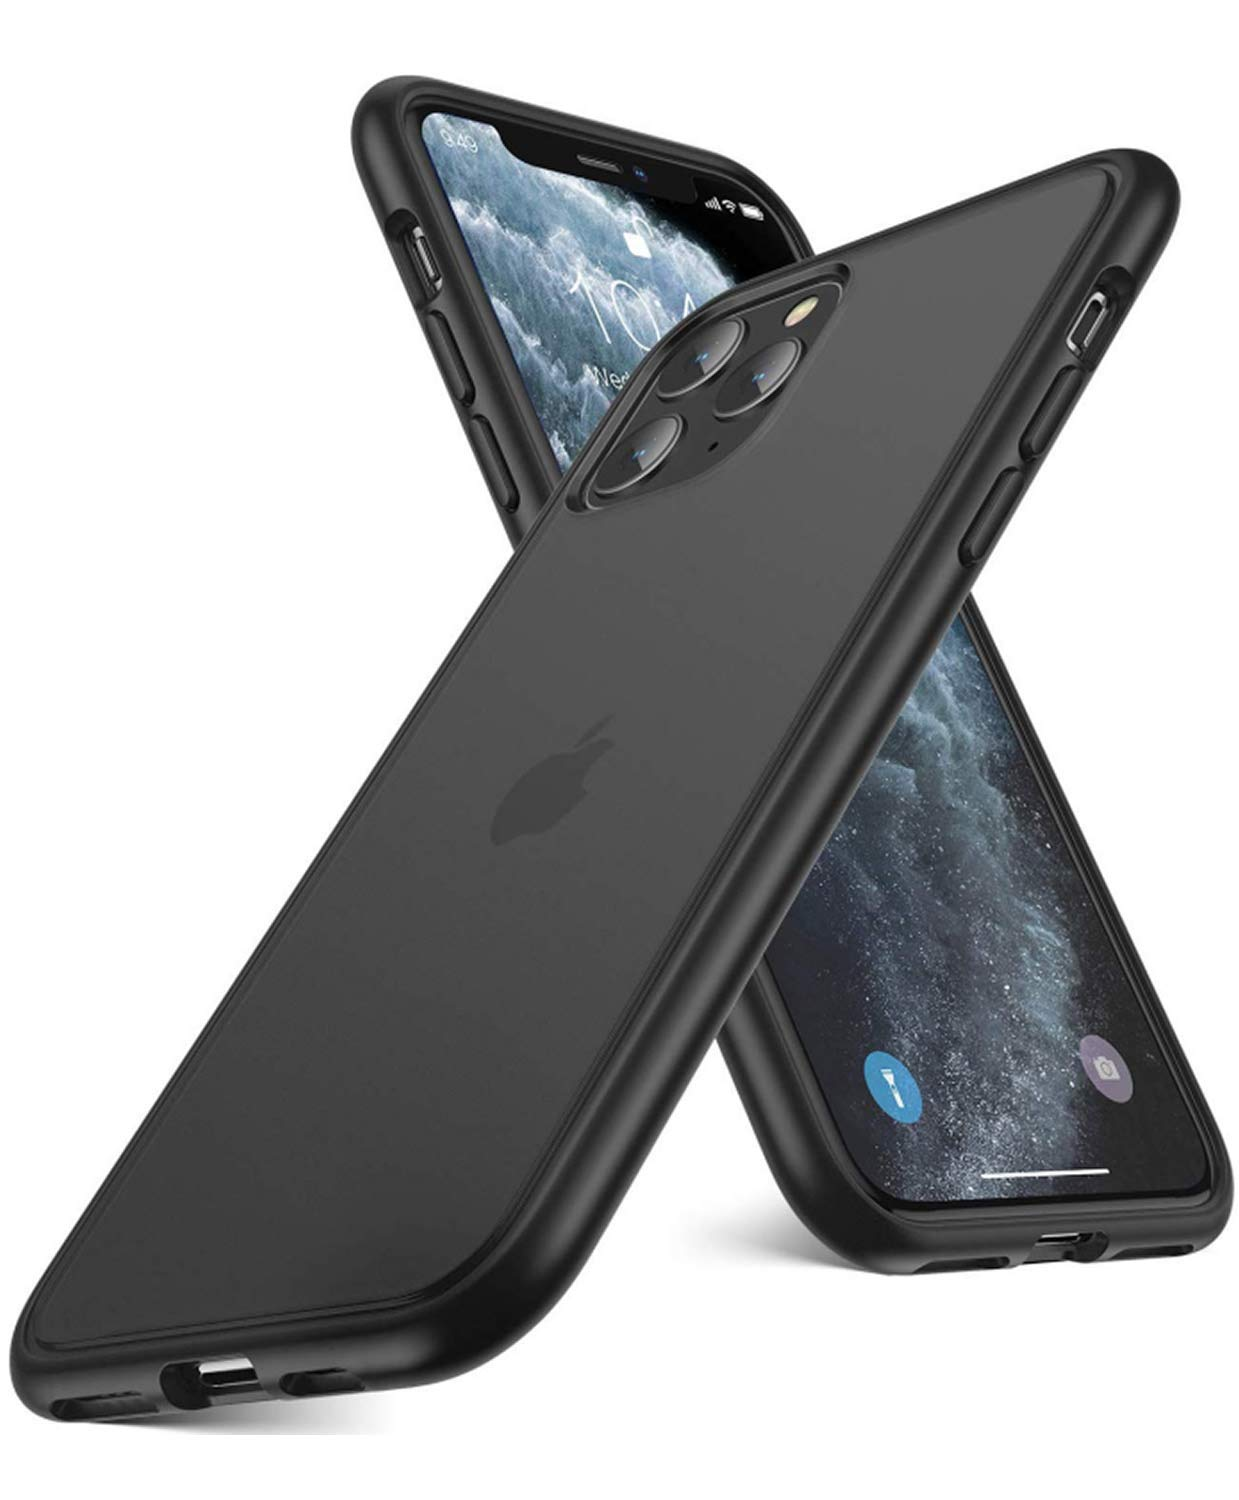 """Humixx iPhone 11 Pro Max Case Military Grade Shockproof Cover, 2 Meters Drop Protection,Dustproof Translucent Matte Hard PC Back Phone Case with Soft Bumper (6.5"""") - Matte Black"""